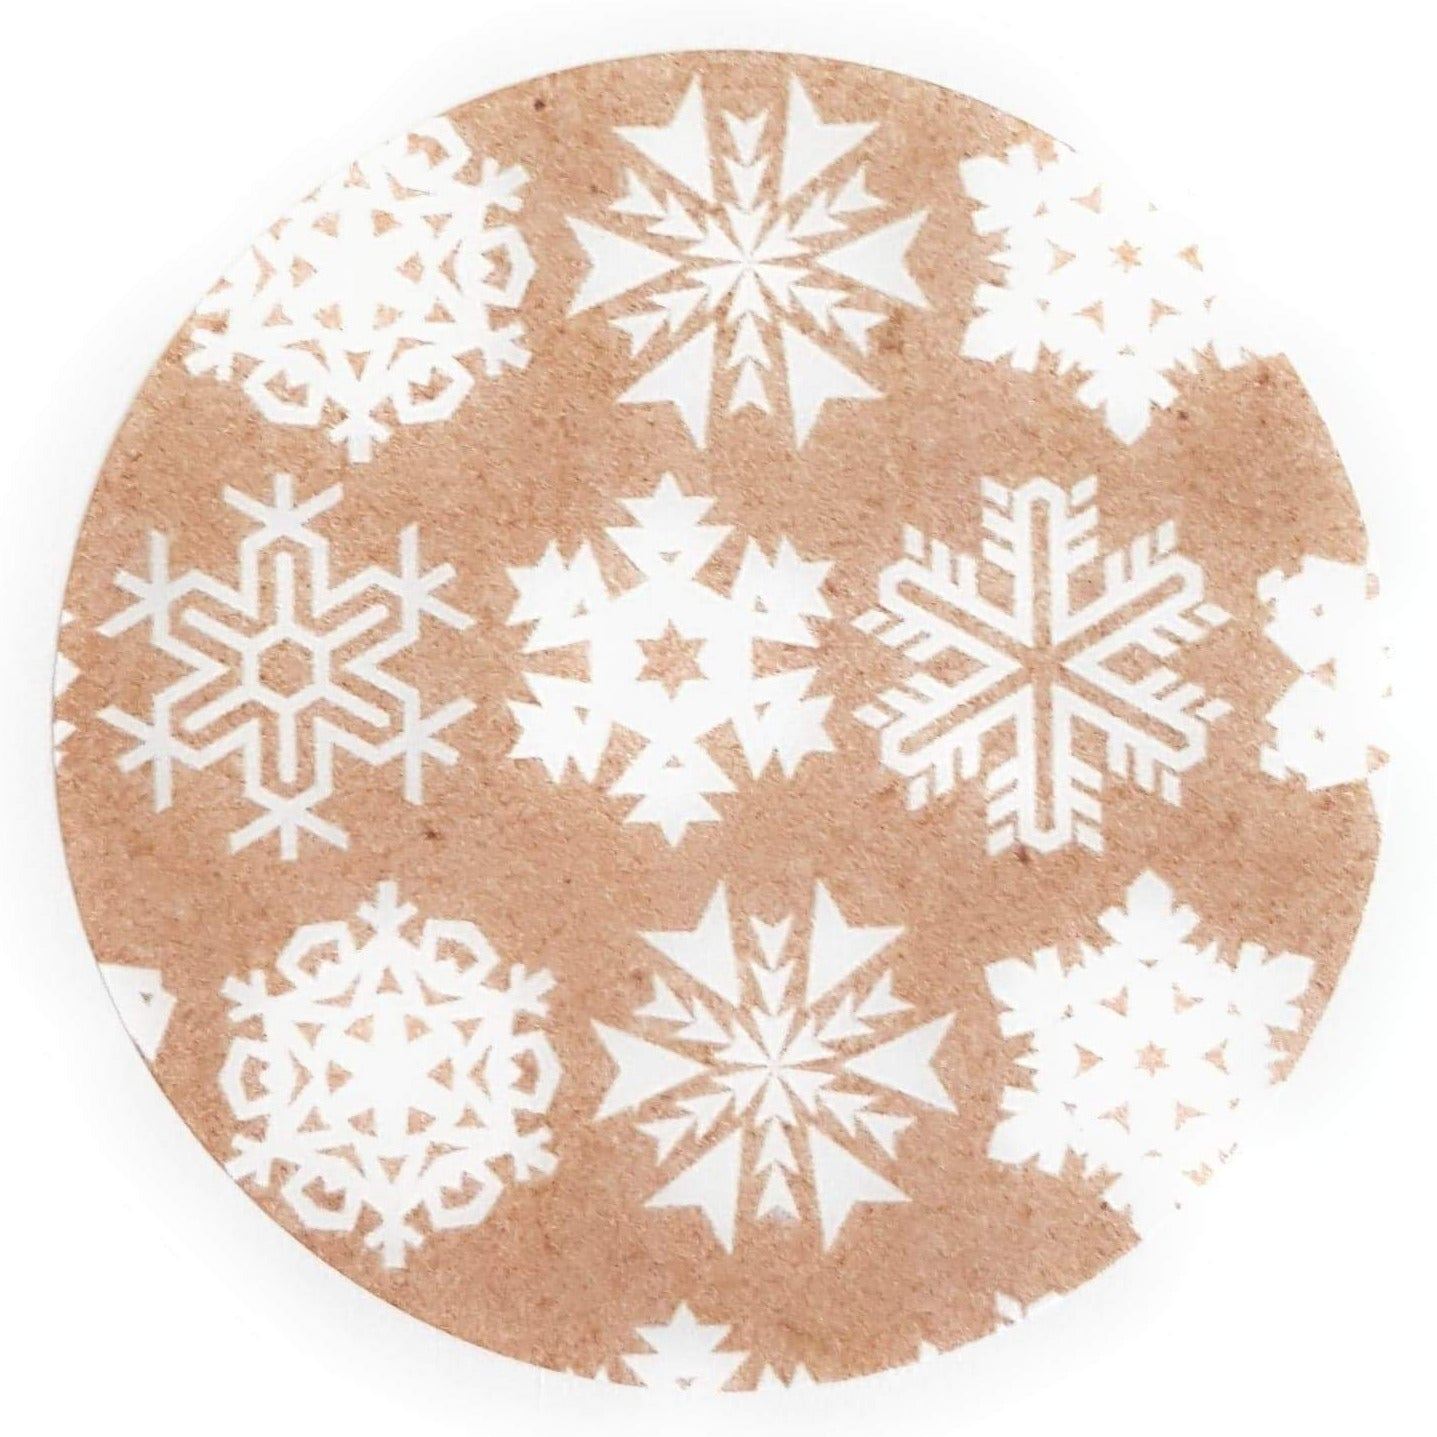 Christmas Snowflake Stickers for Gift Wrap - Set of 105